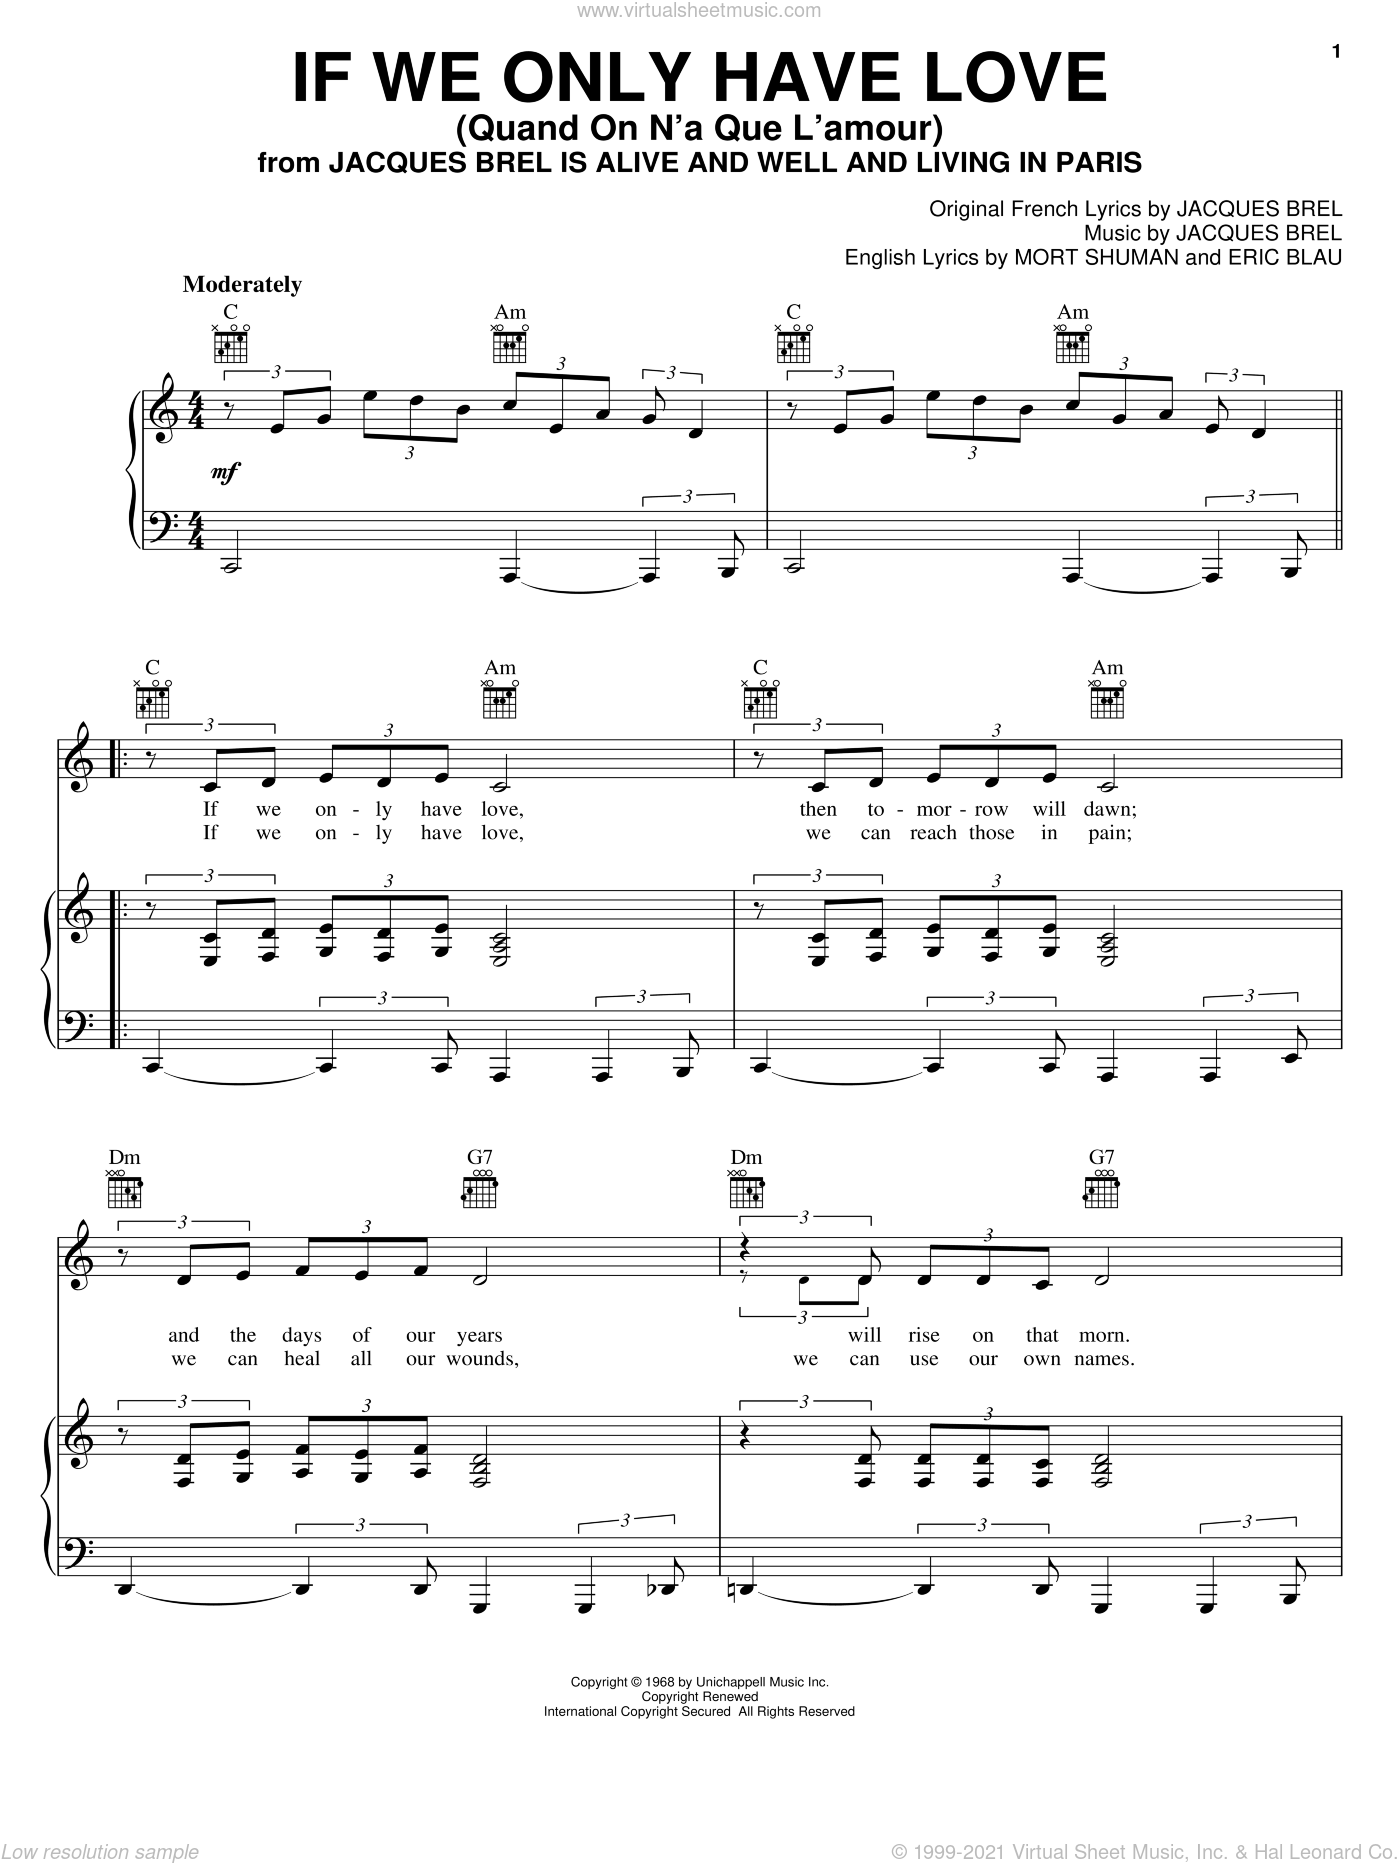 If We Only Have Love (Quand On N'a Que L'amour) sheet music for voice, piano or guitar by Mort Shuman, Barry Manilow, Eric Blau and Jacques Brel. Score Image Preview.